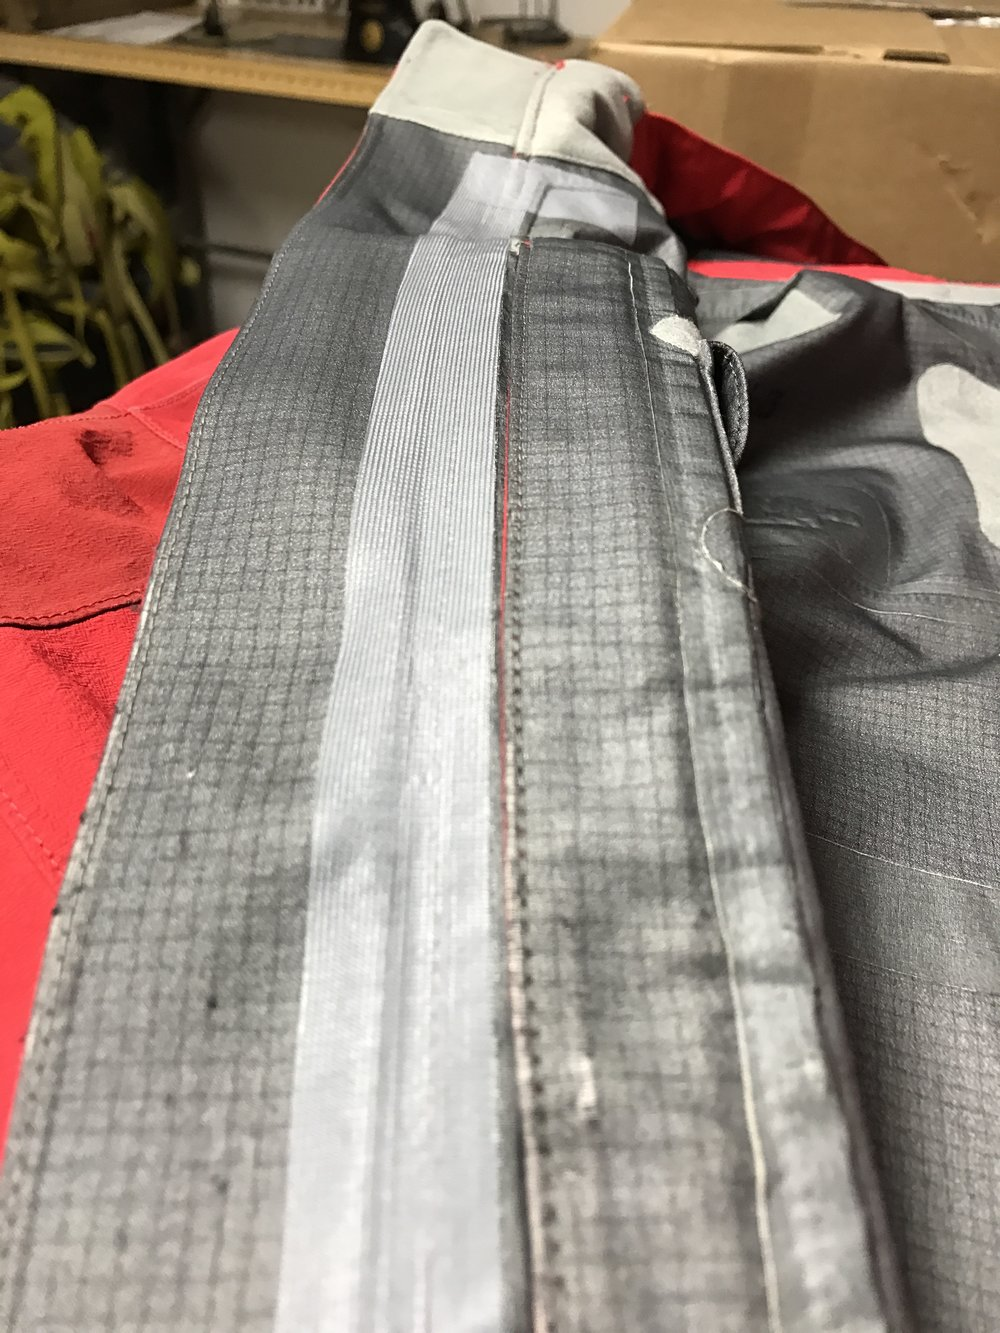 After replacing the zipper on this shell, the seam was taped to restore a factory level of waterproofing.